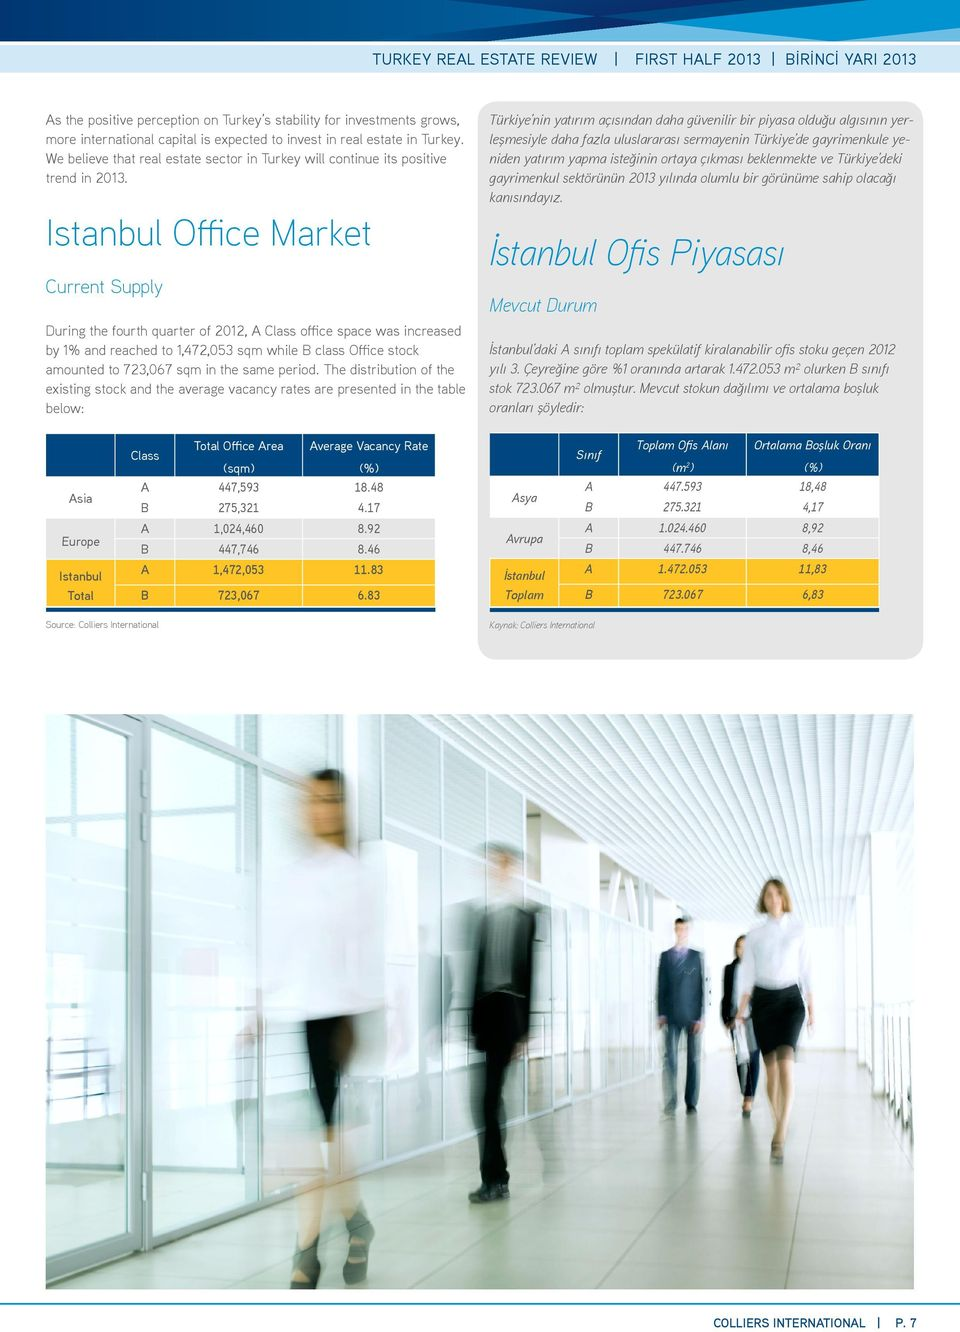 Istanbul Office Market Current Supply During the fourth quarter of 2012, A Class office space was increased by 1% and reached to 1,472,053 sqm while B class Office stock amounted to 723,067 sqm in